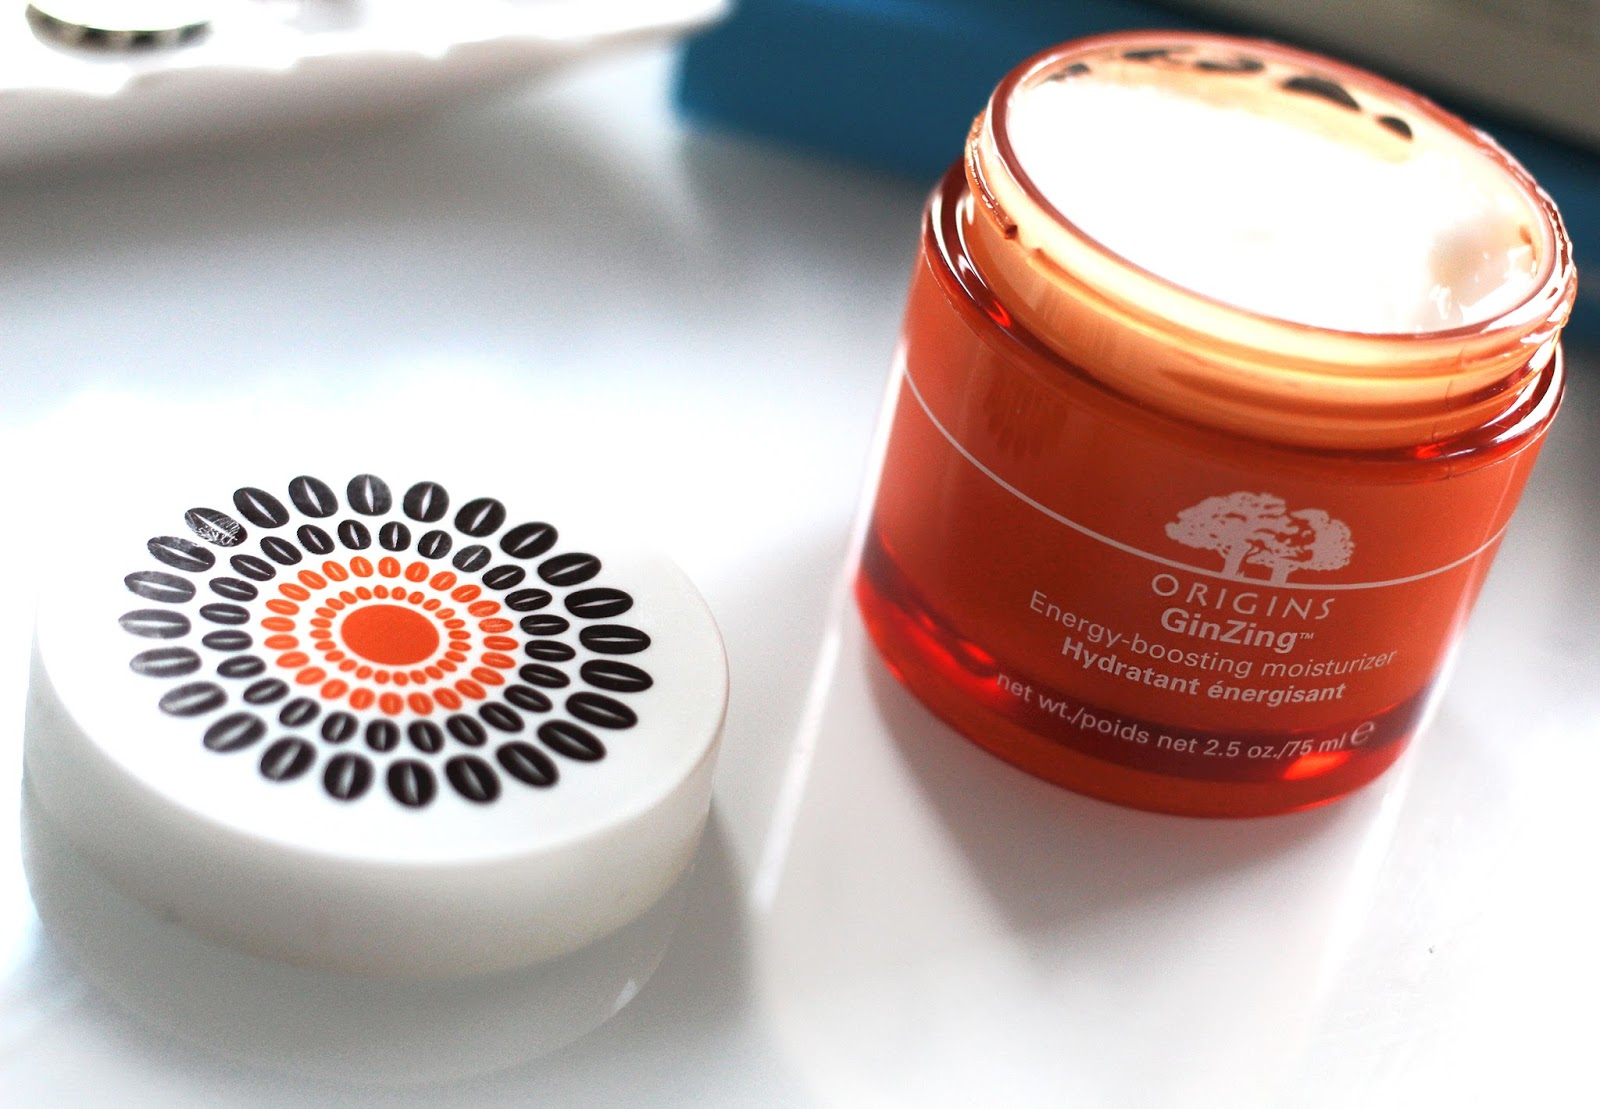 Beauty blogger reviews the Limited Edition Origins GinZing Energy Boosting Moisturiser